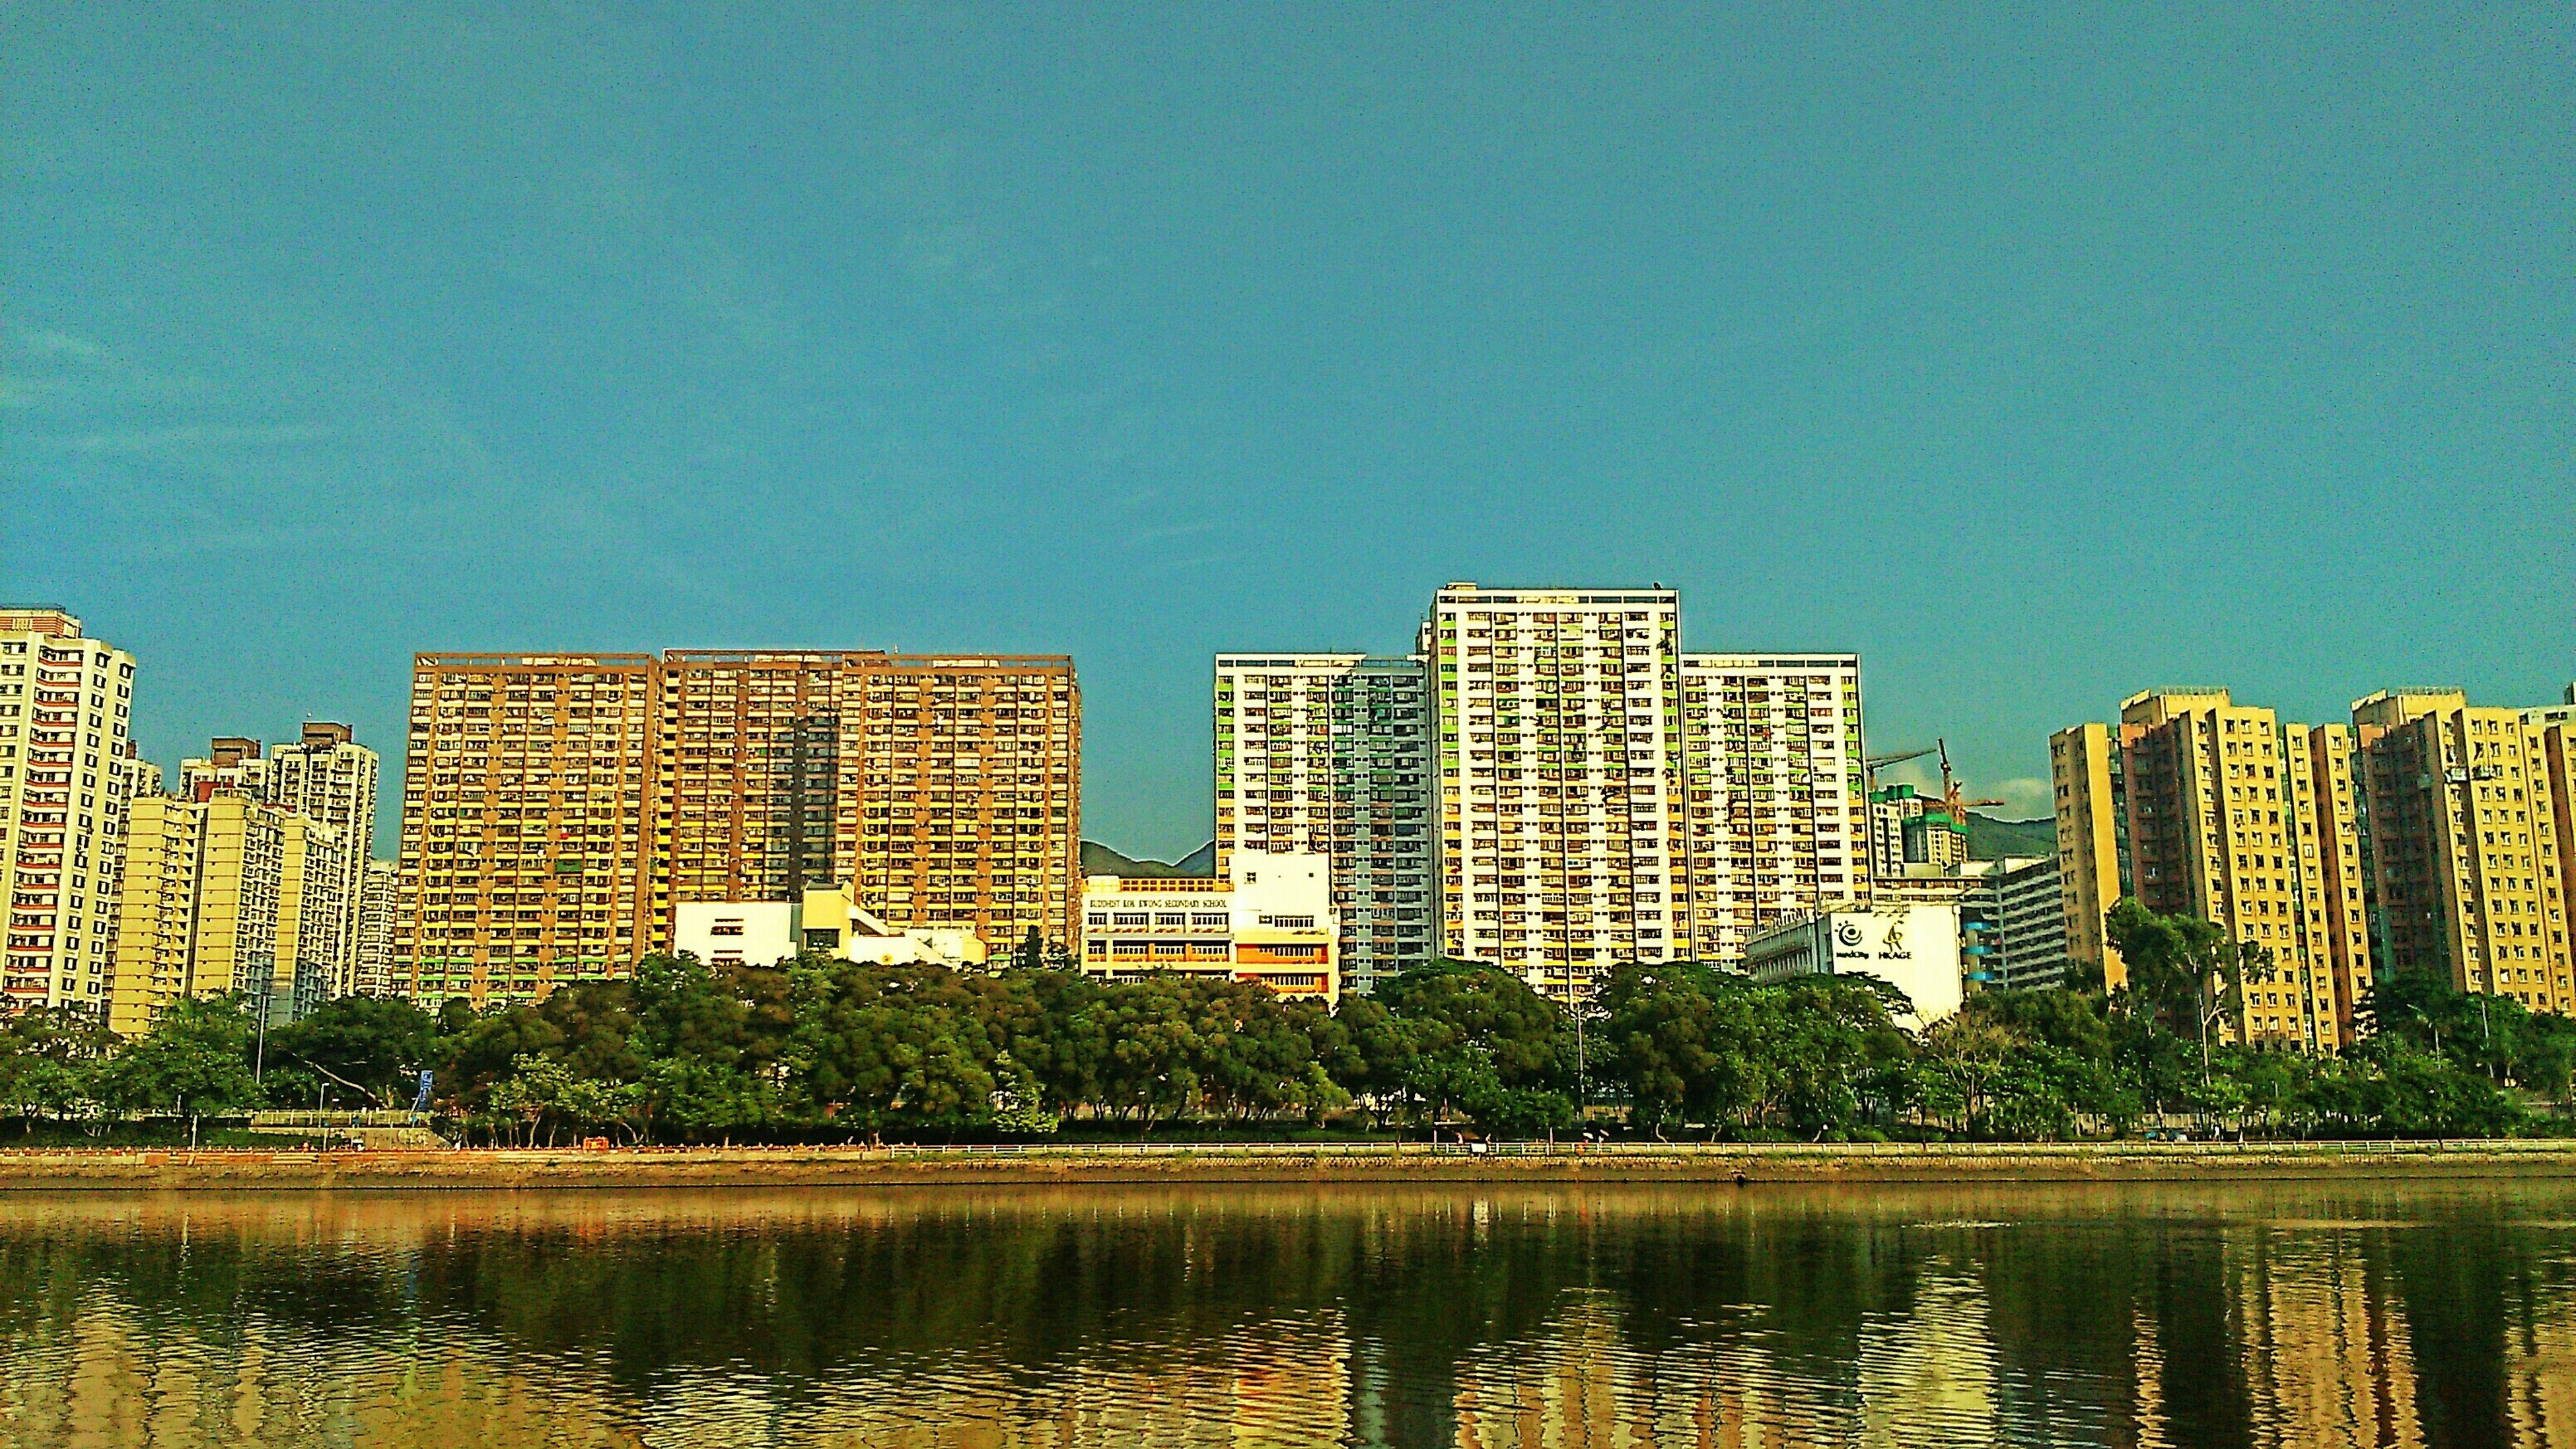 architecture, clear sky, building exterior, built structure, water, copy space, blue, reflection, waterfront, city, river, building, cityscape, lake, no people, residential structure, modern, outdoors, window, residential building